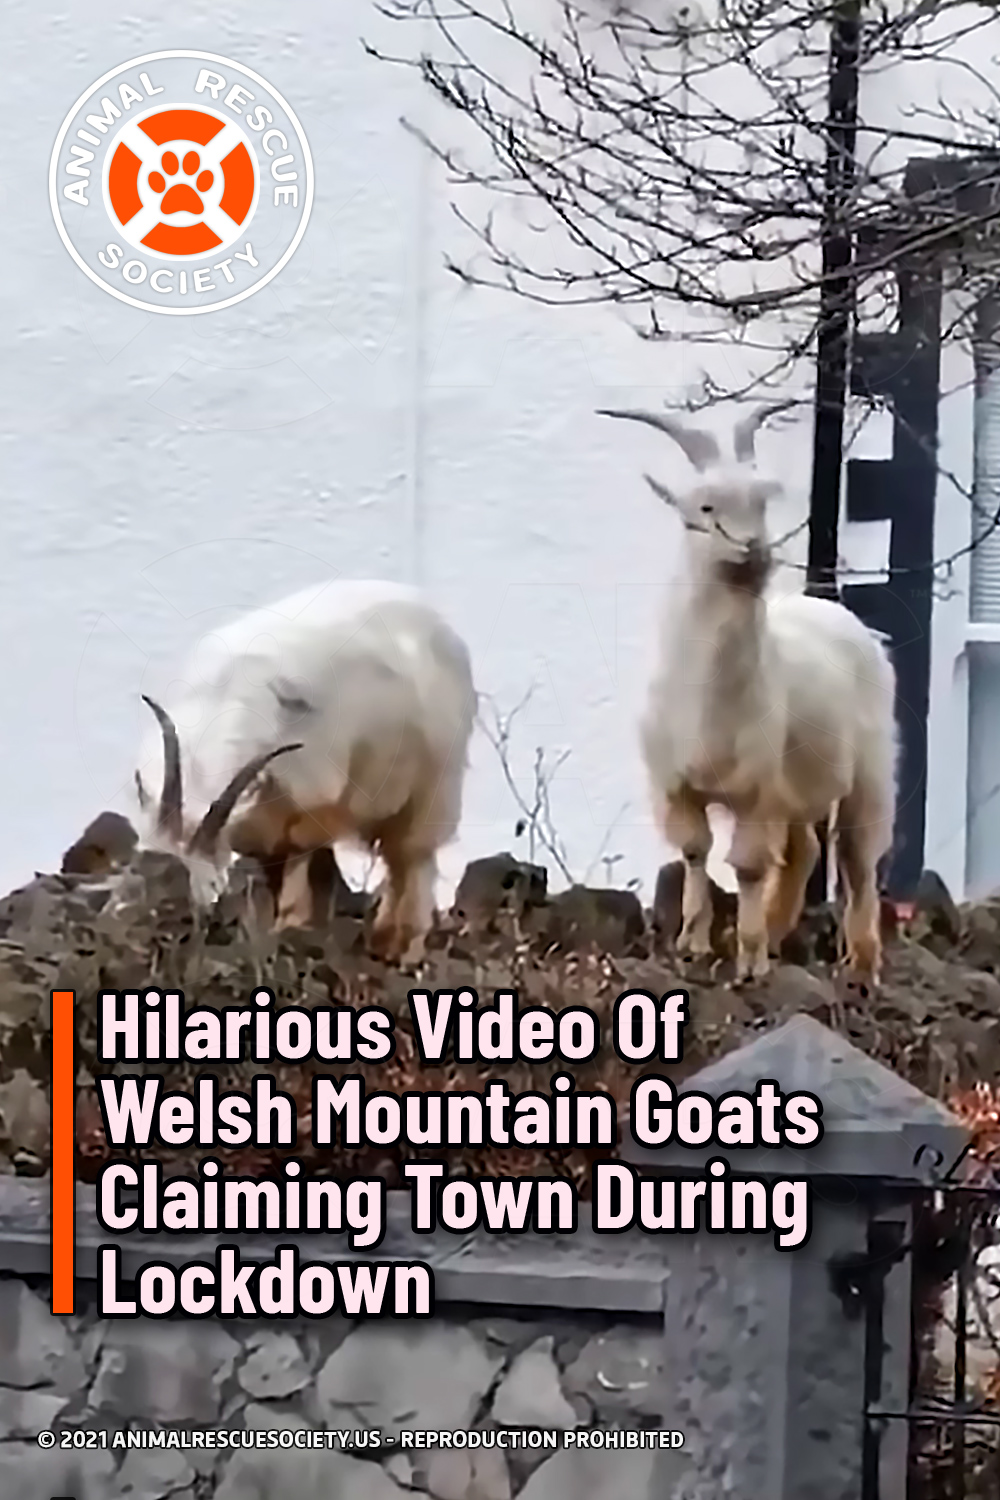 Hilarious Video Of Welsh Mountain Goats Claiming Town During Lockdown